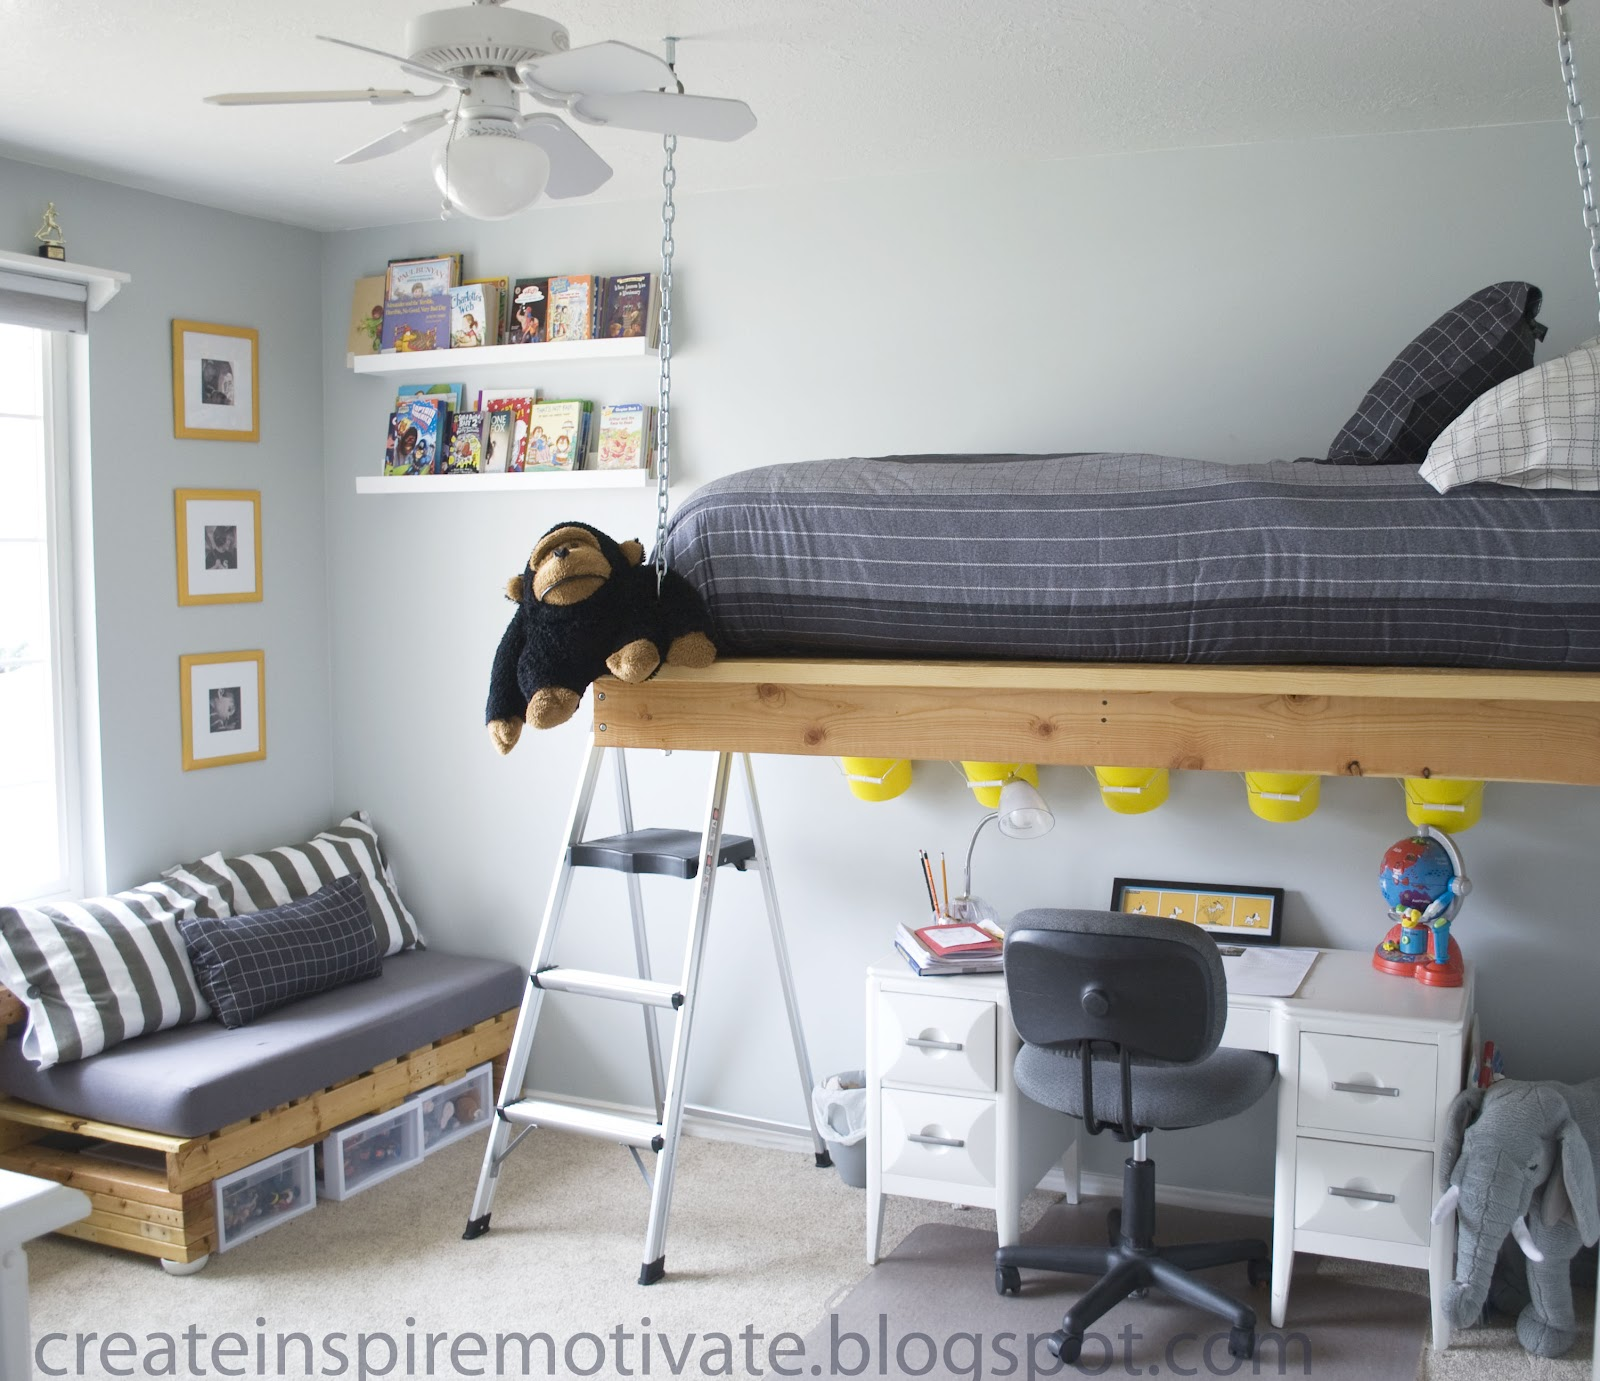 Createinspiremotivate C 39 S Room Part 1 Hanging Bed